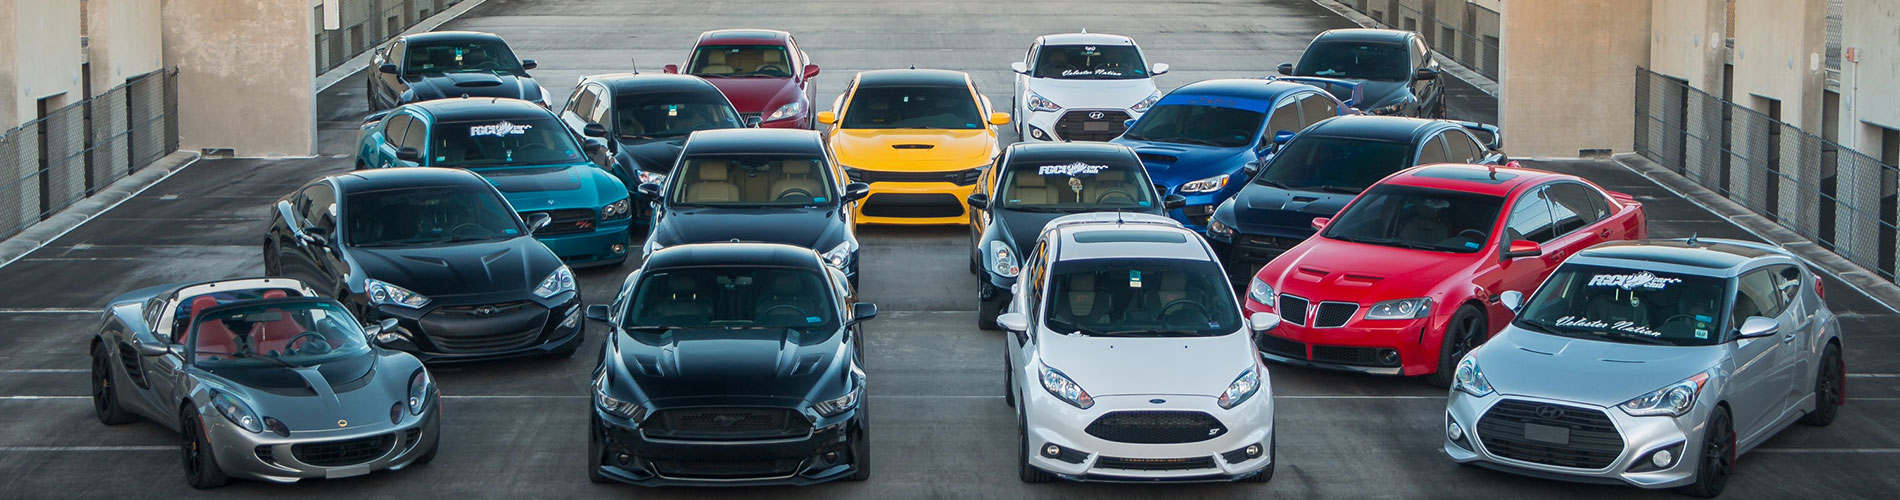 Photo of FGCU Car Club - cars parked on top of parking garage.